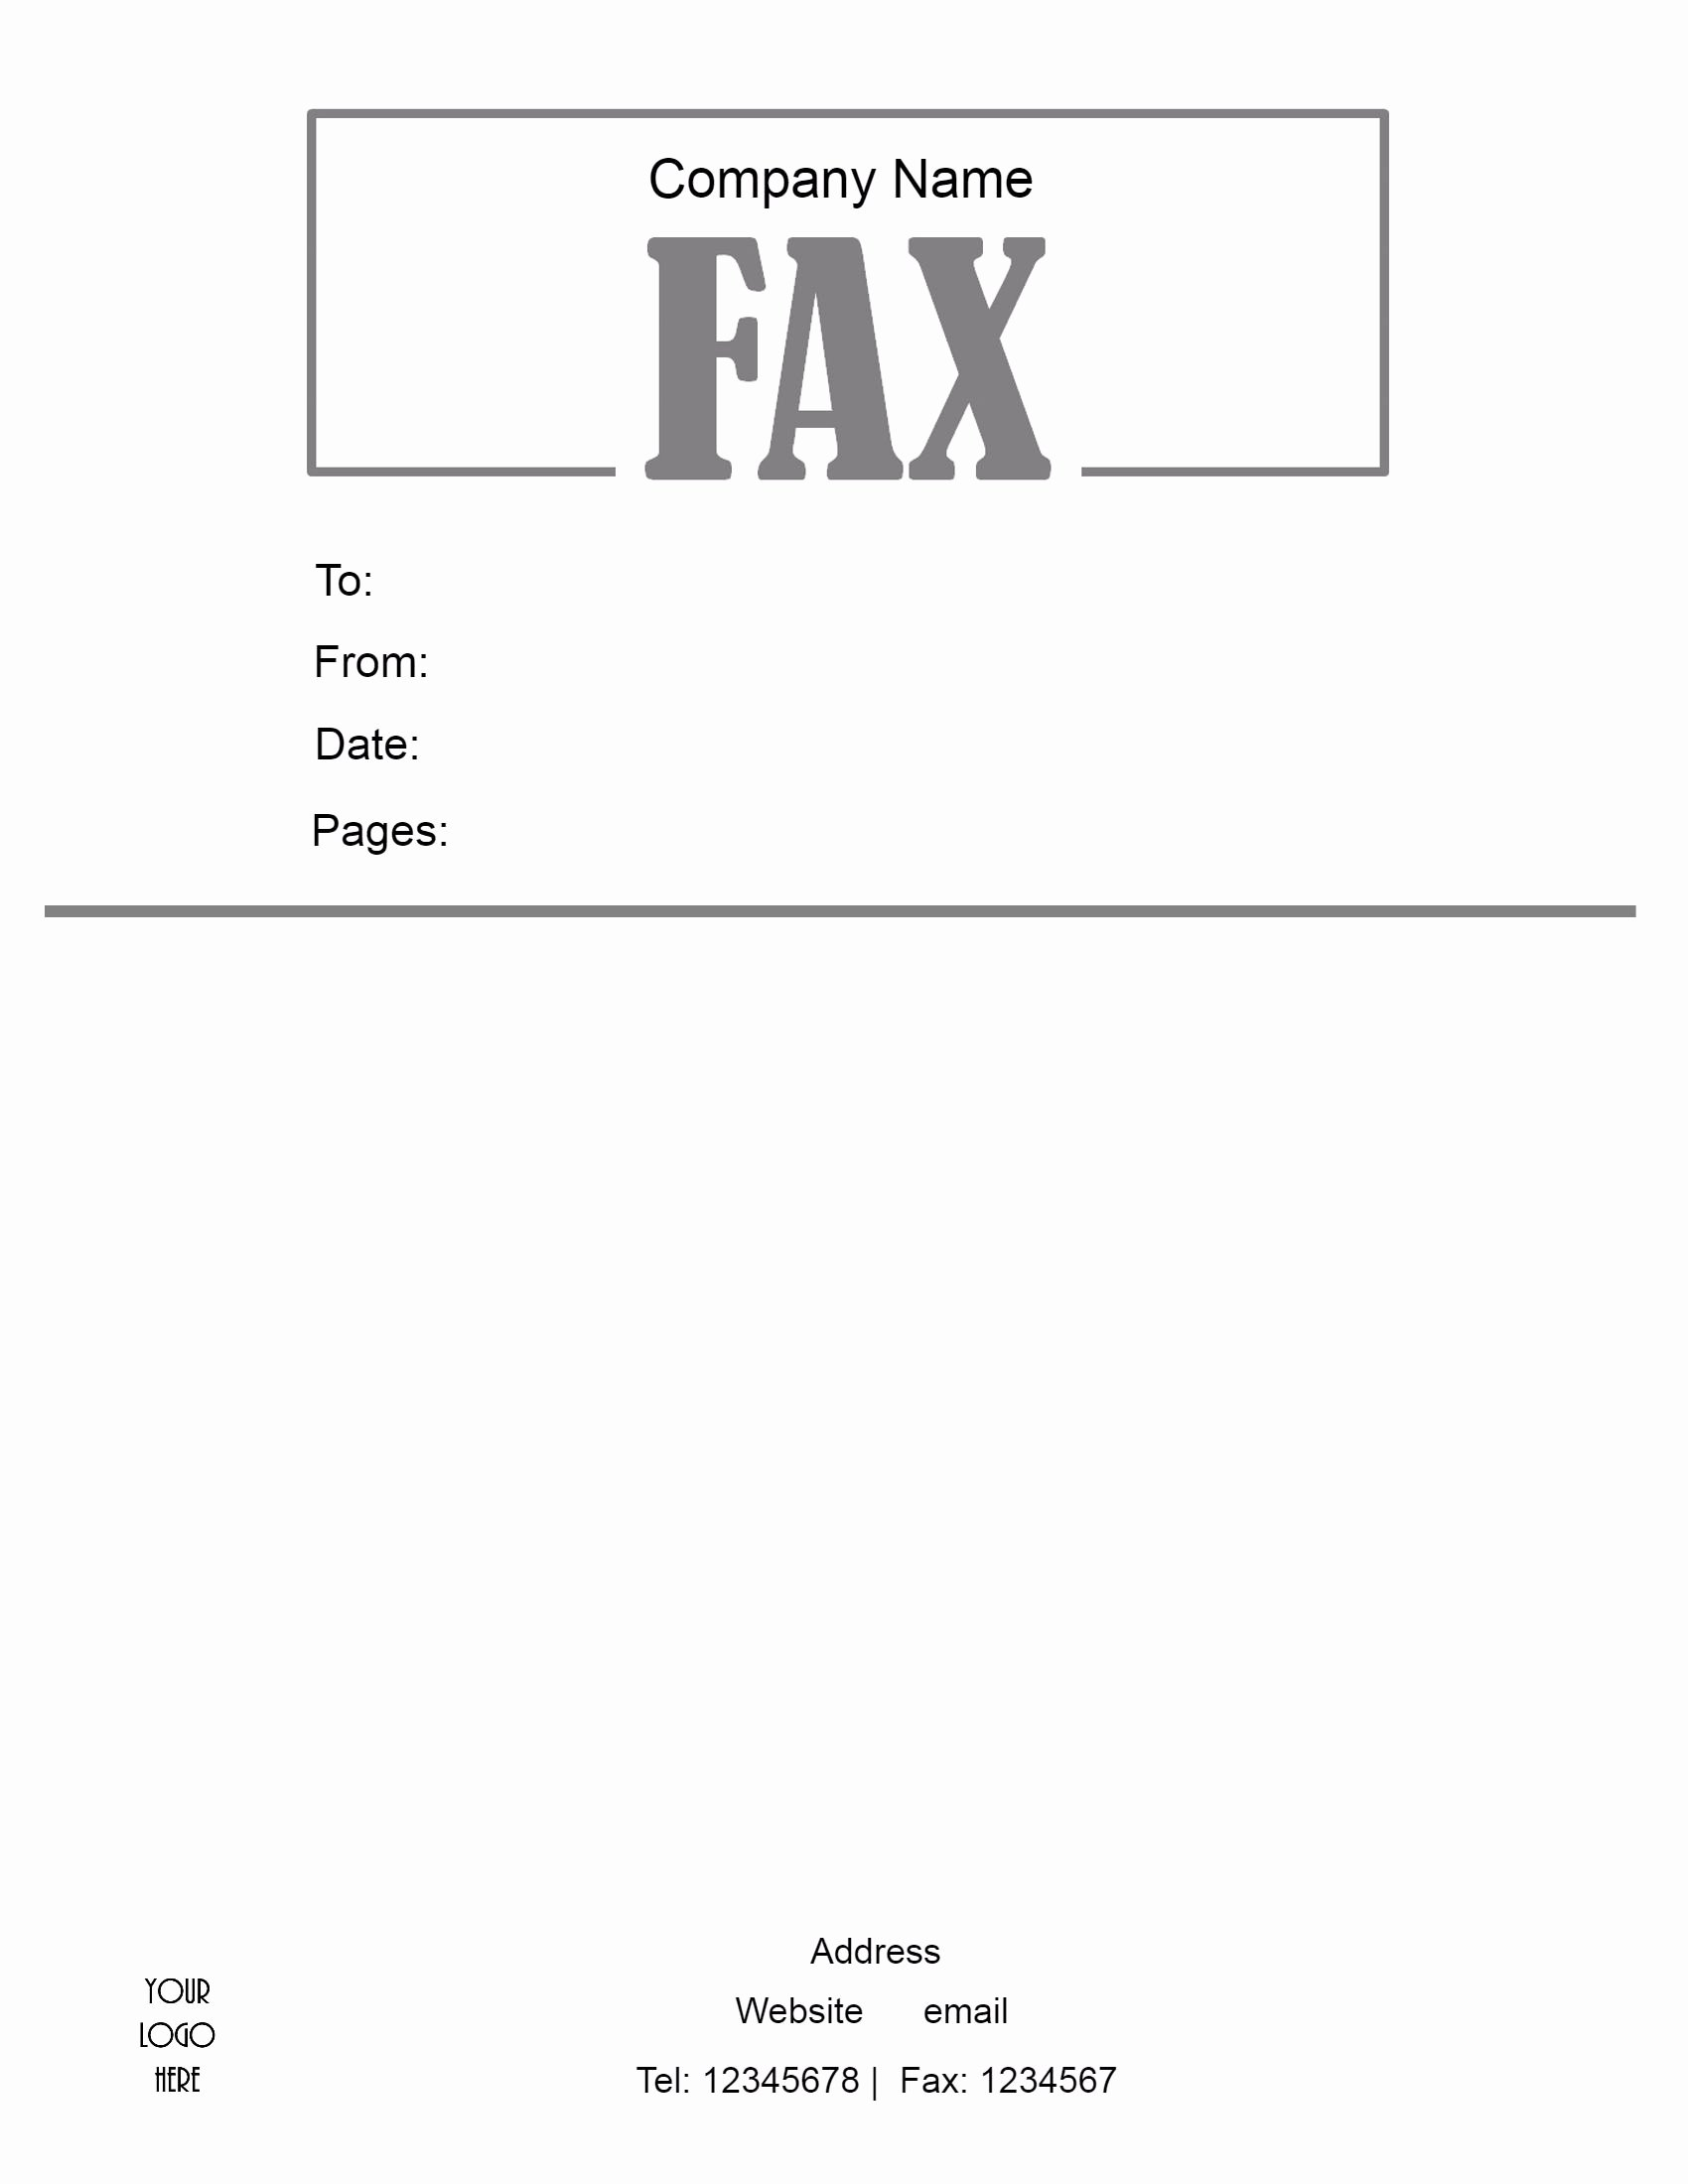 Sample Fax Cover Sheets Unique Free Fax Cover Sheet Template